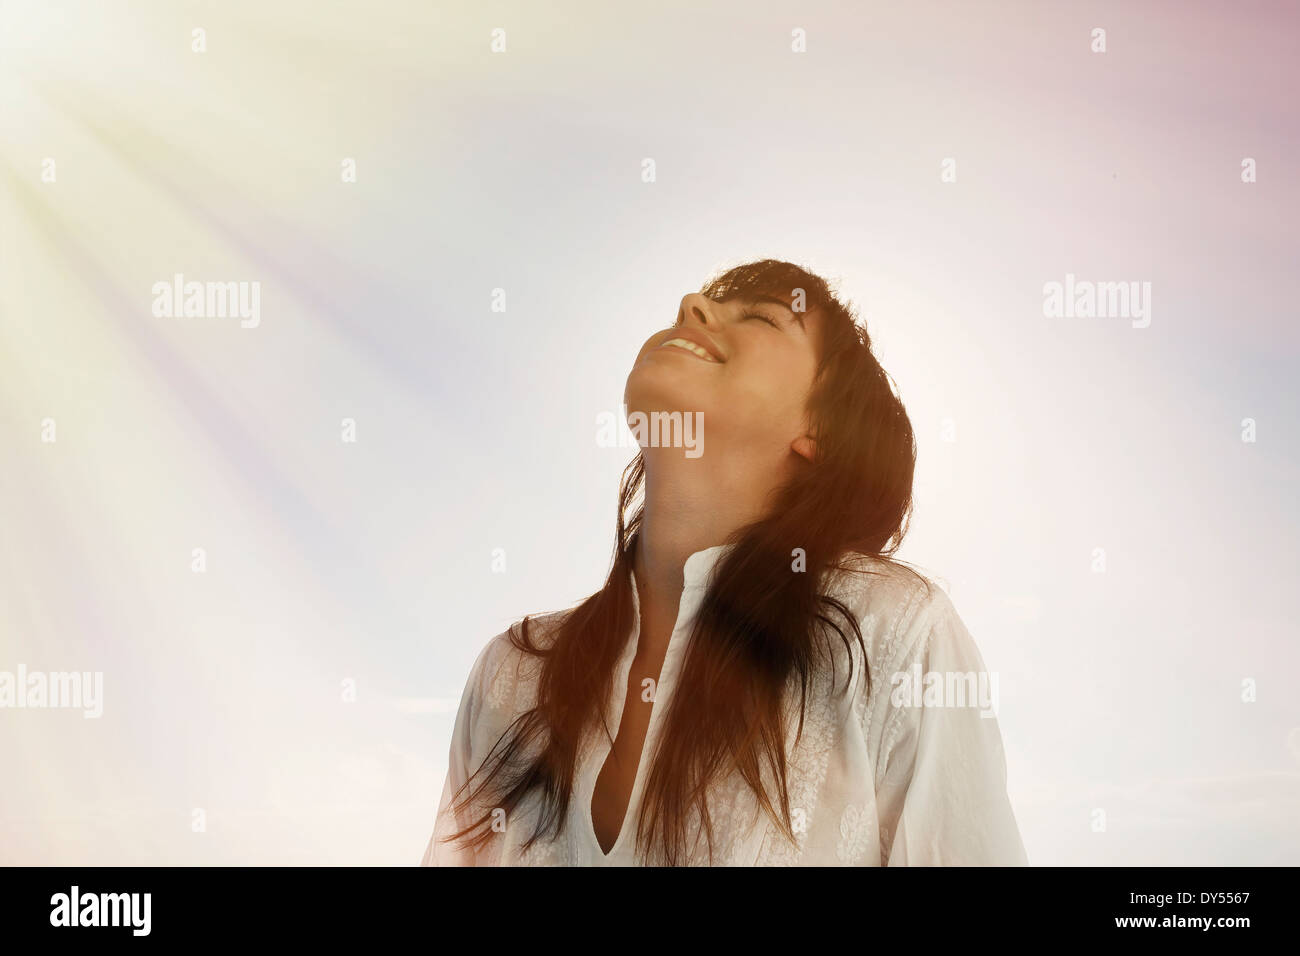 Young woman looking up, sun beams on face - Stock Image